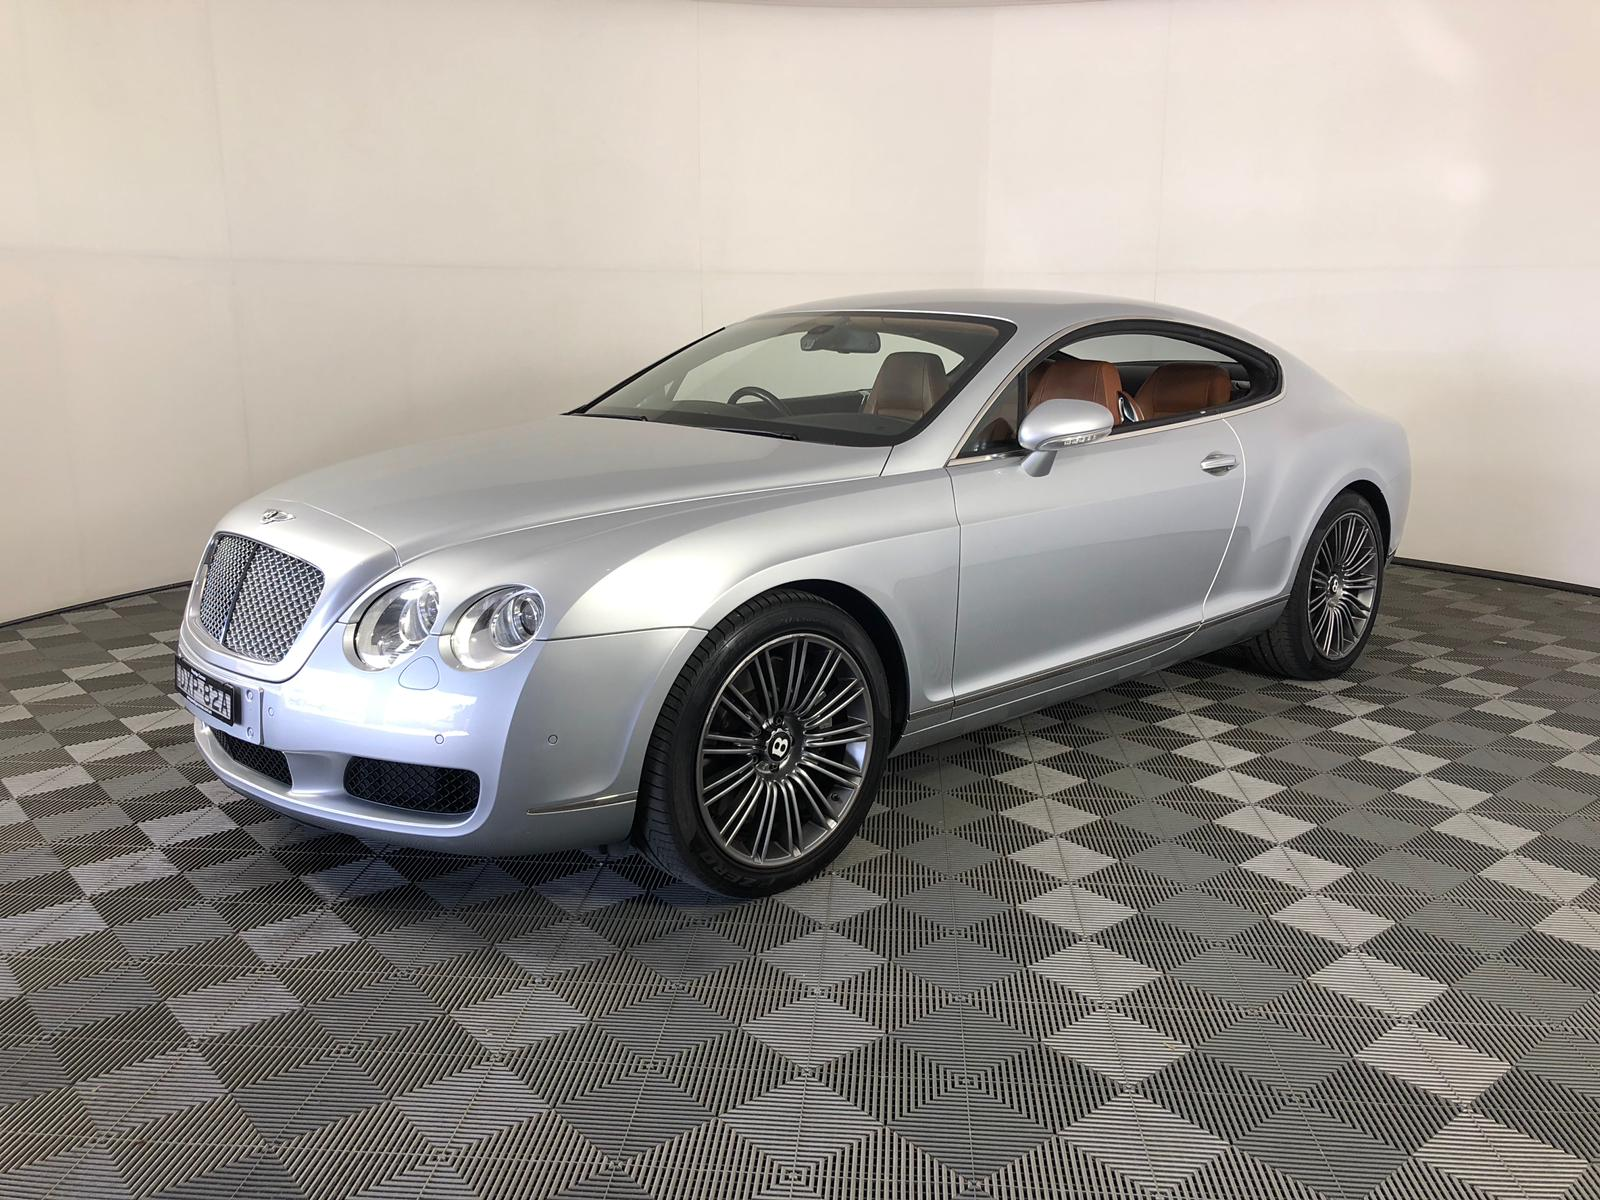 2004 Bentley Continental GT Coupe, Australian Delivery Full Bentley Service